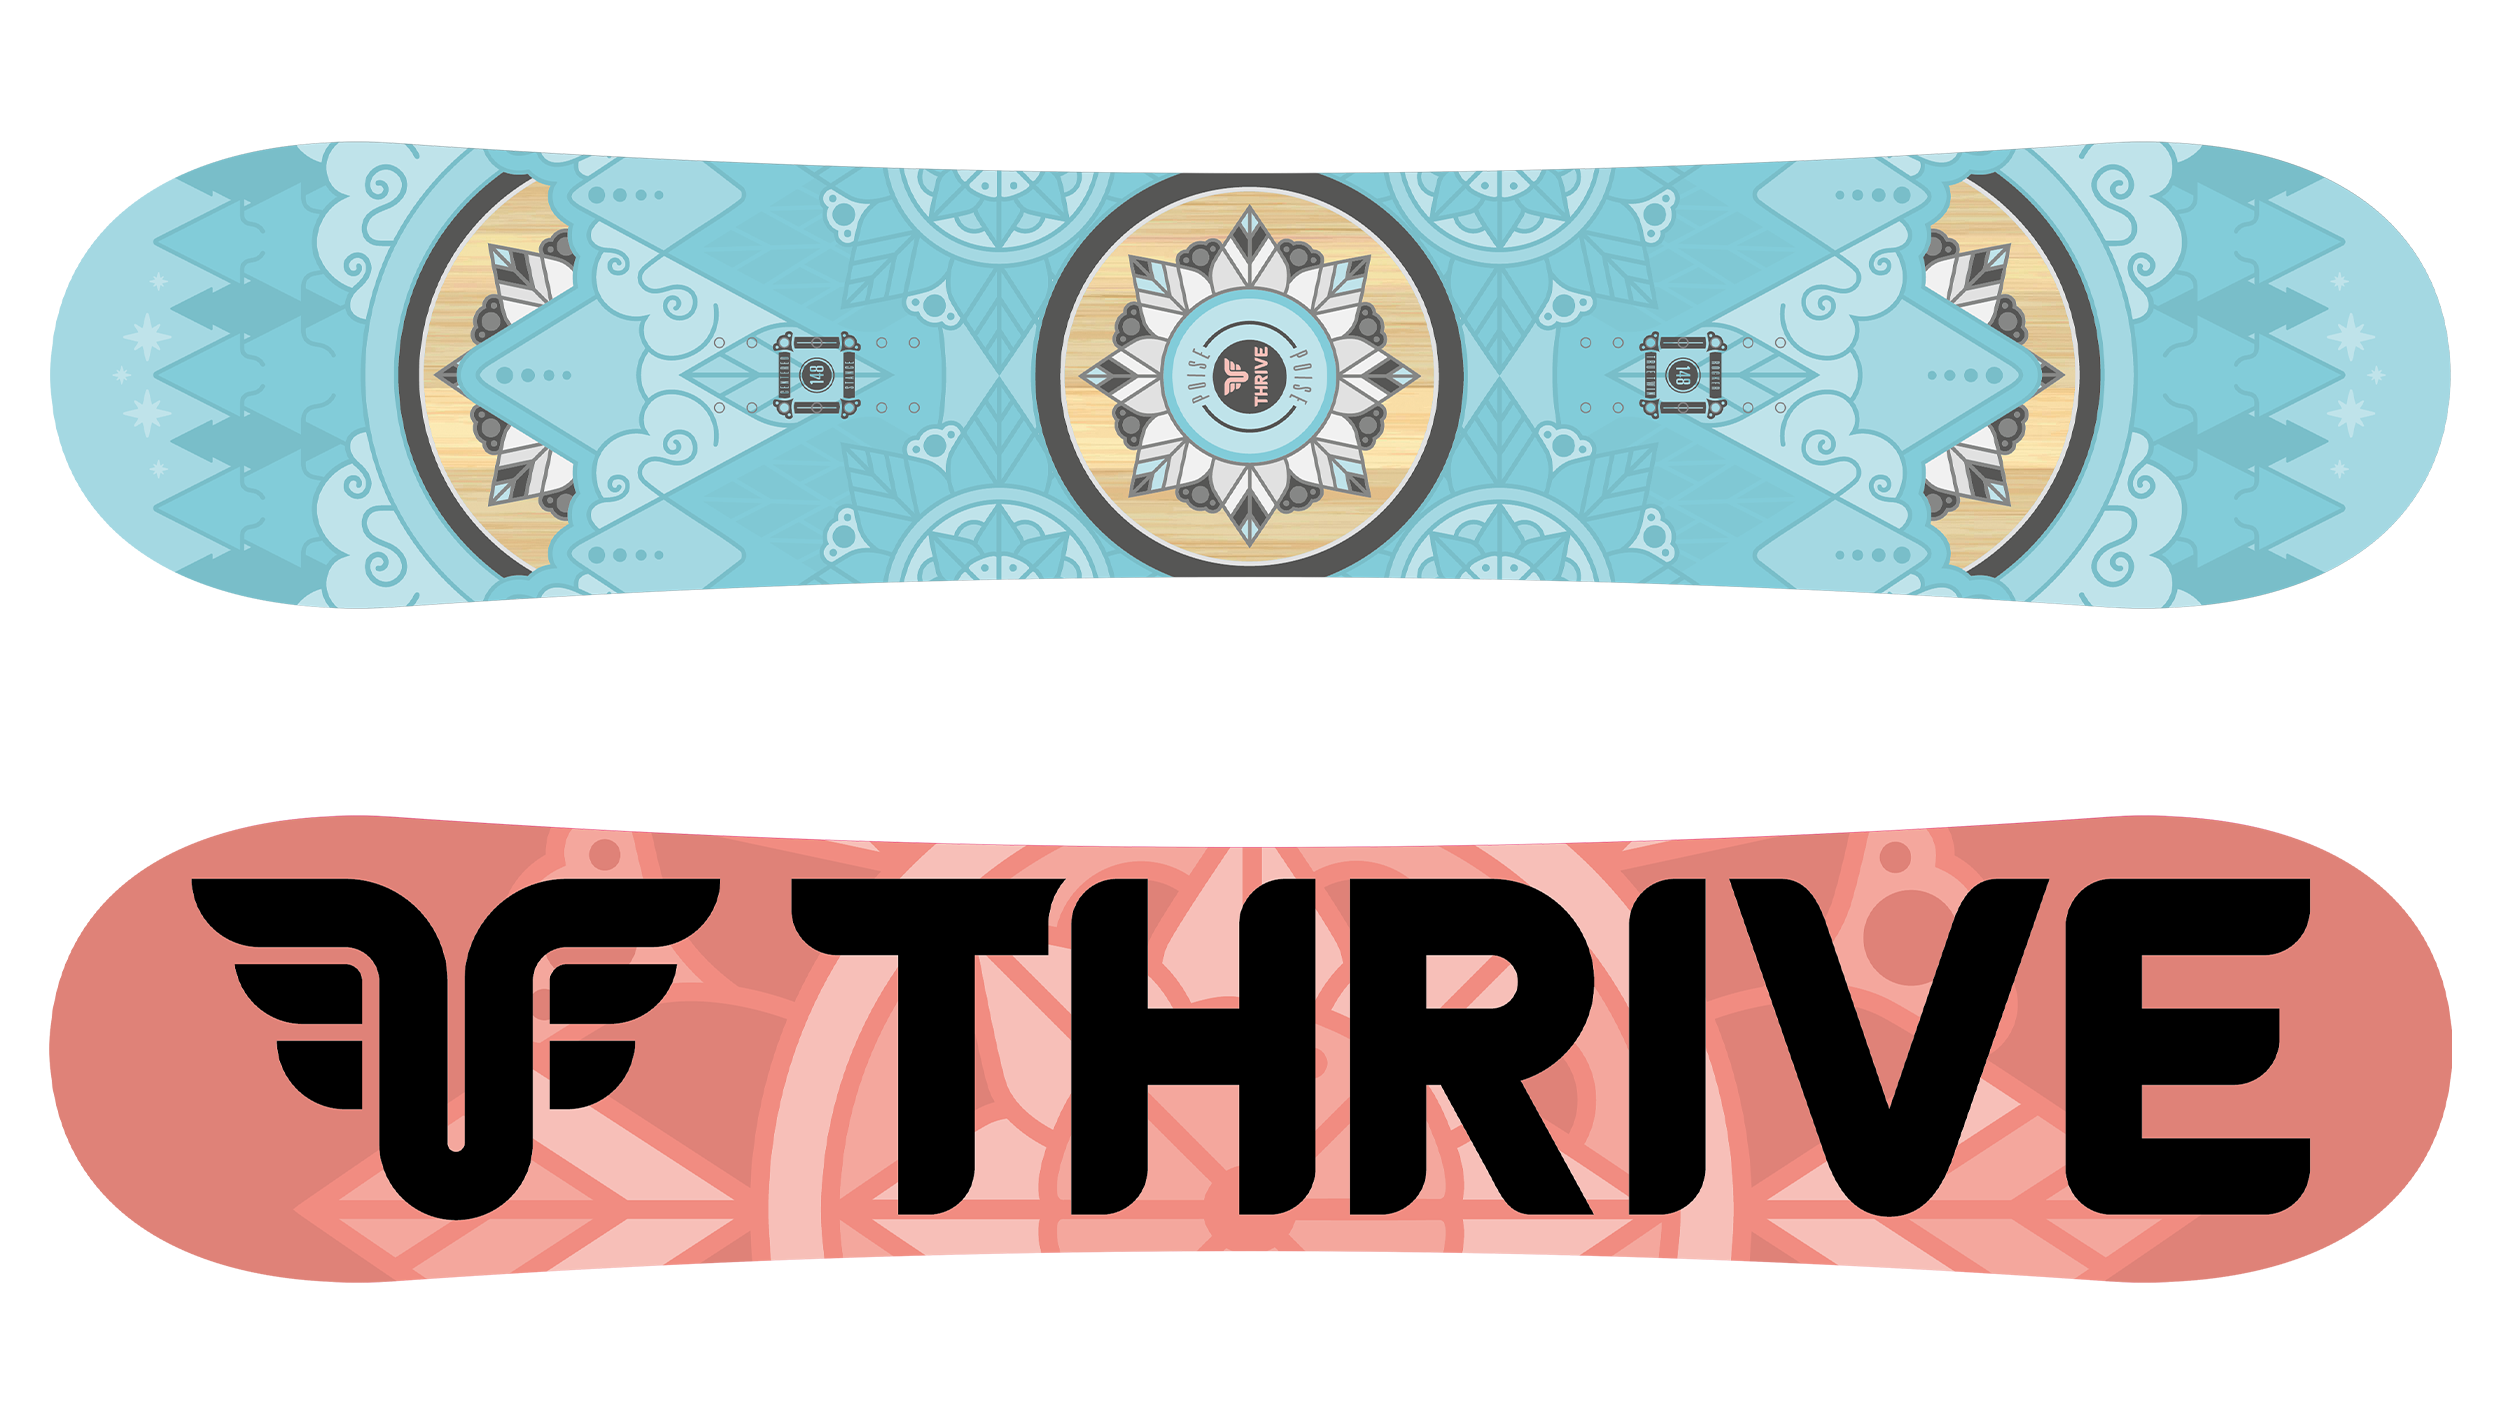 Thrive Poise Snowboard